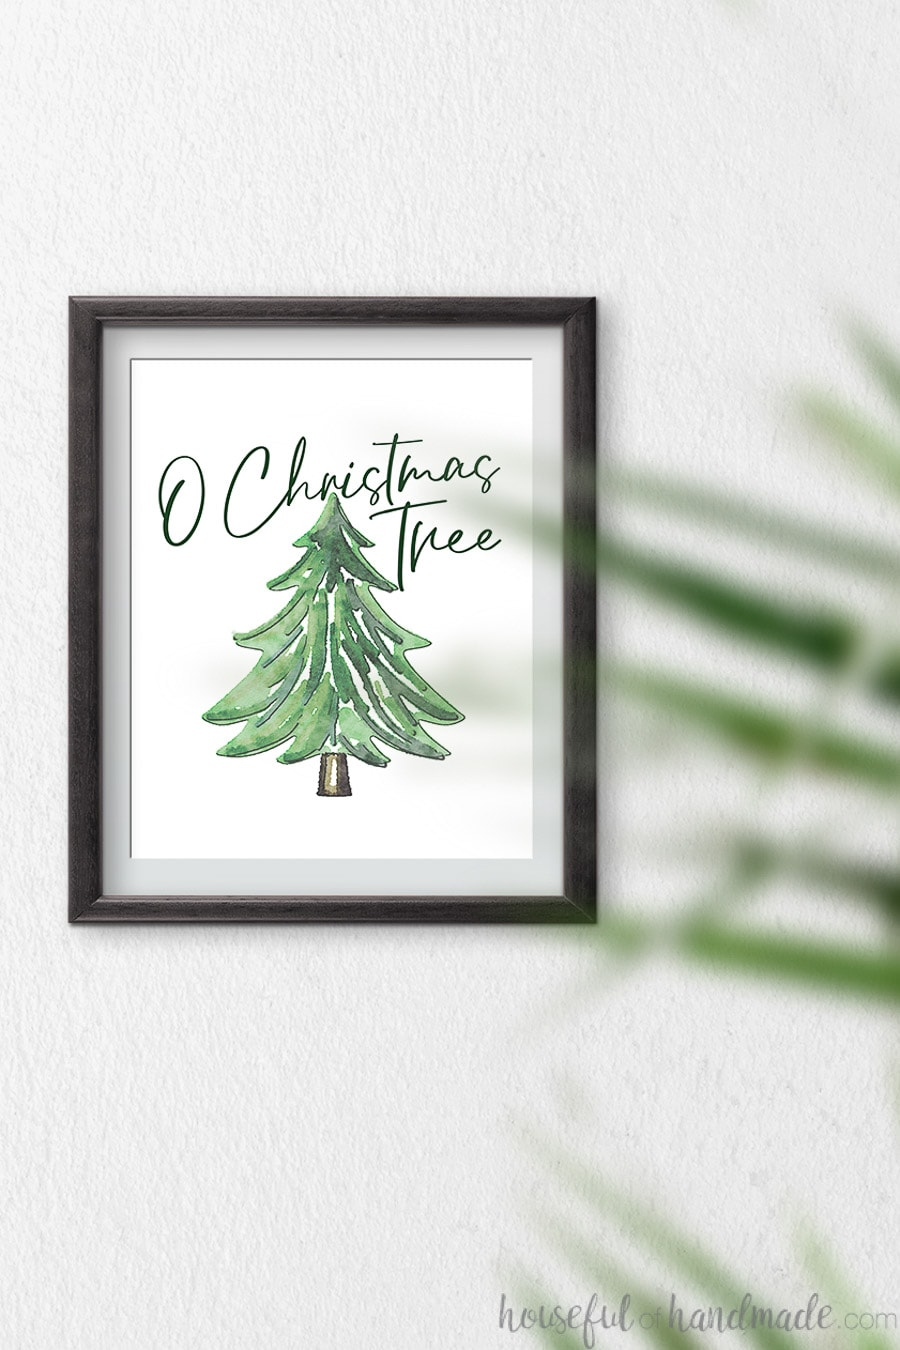 O Christmas Tree script font over the top of a watercolor pine tree as a Christmas art print.